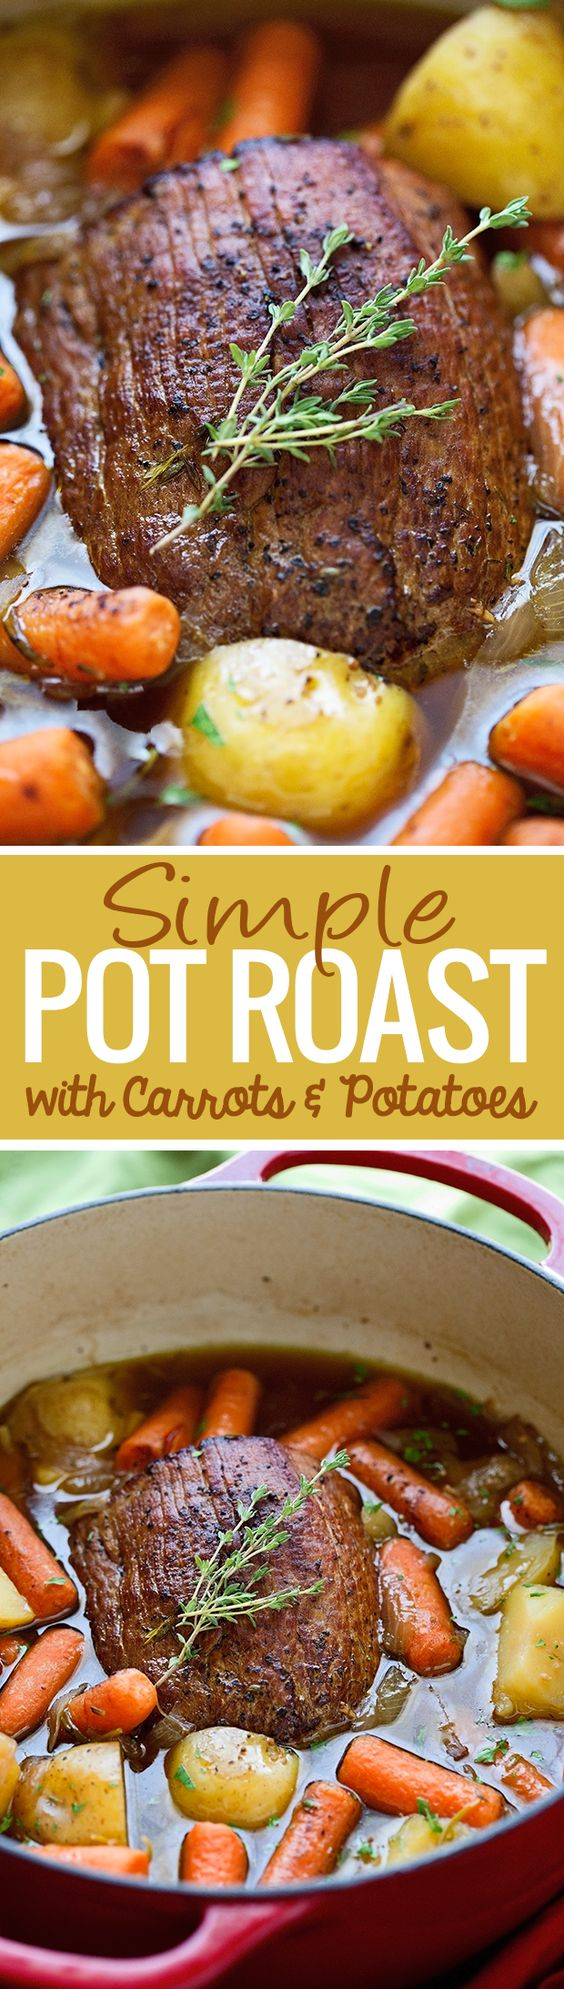 Pot Roast with Carrots and Potatoes - a simple recipe for pot roast that tastes like a french onion soup! The meat is tender and delicious and it requires a simple 15 minutes of presswork! #potroast #roast #beefroast | Littlespicejar.com @littlespicejar